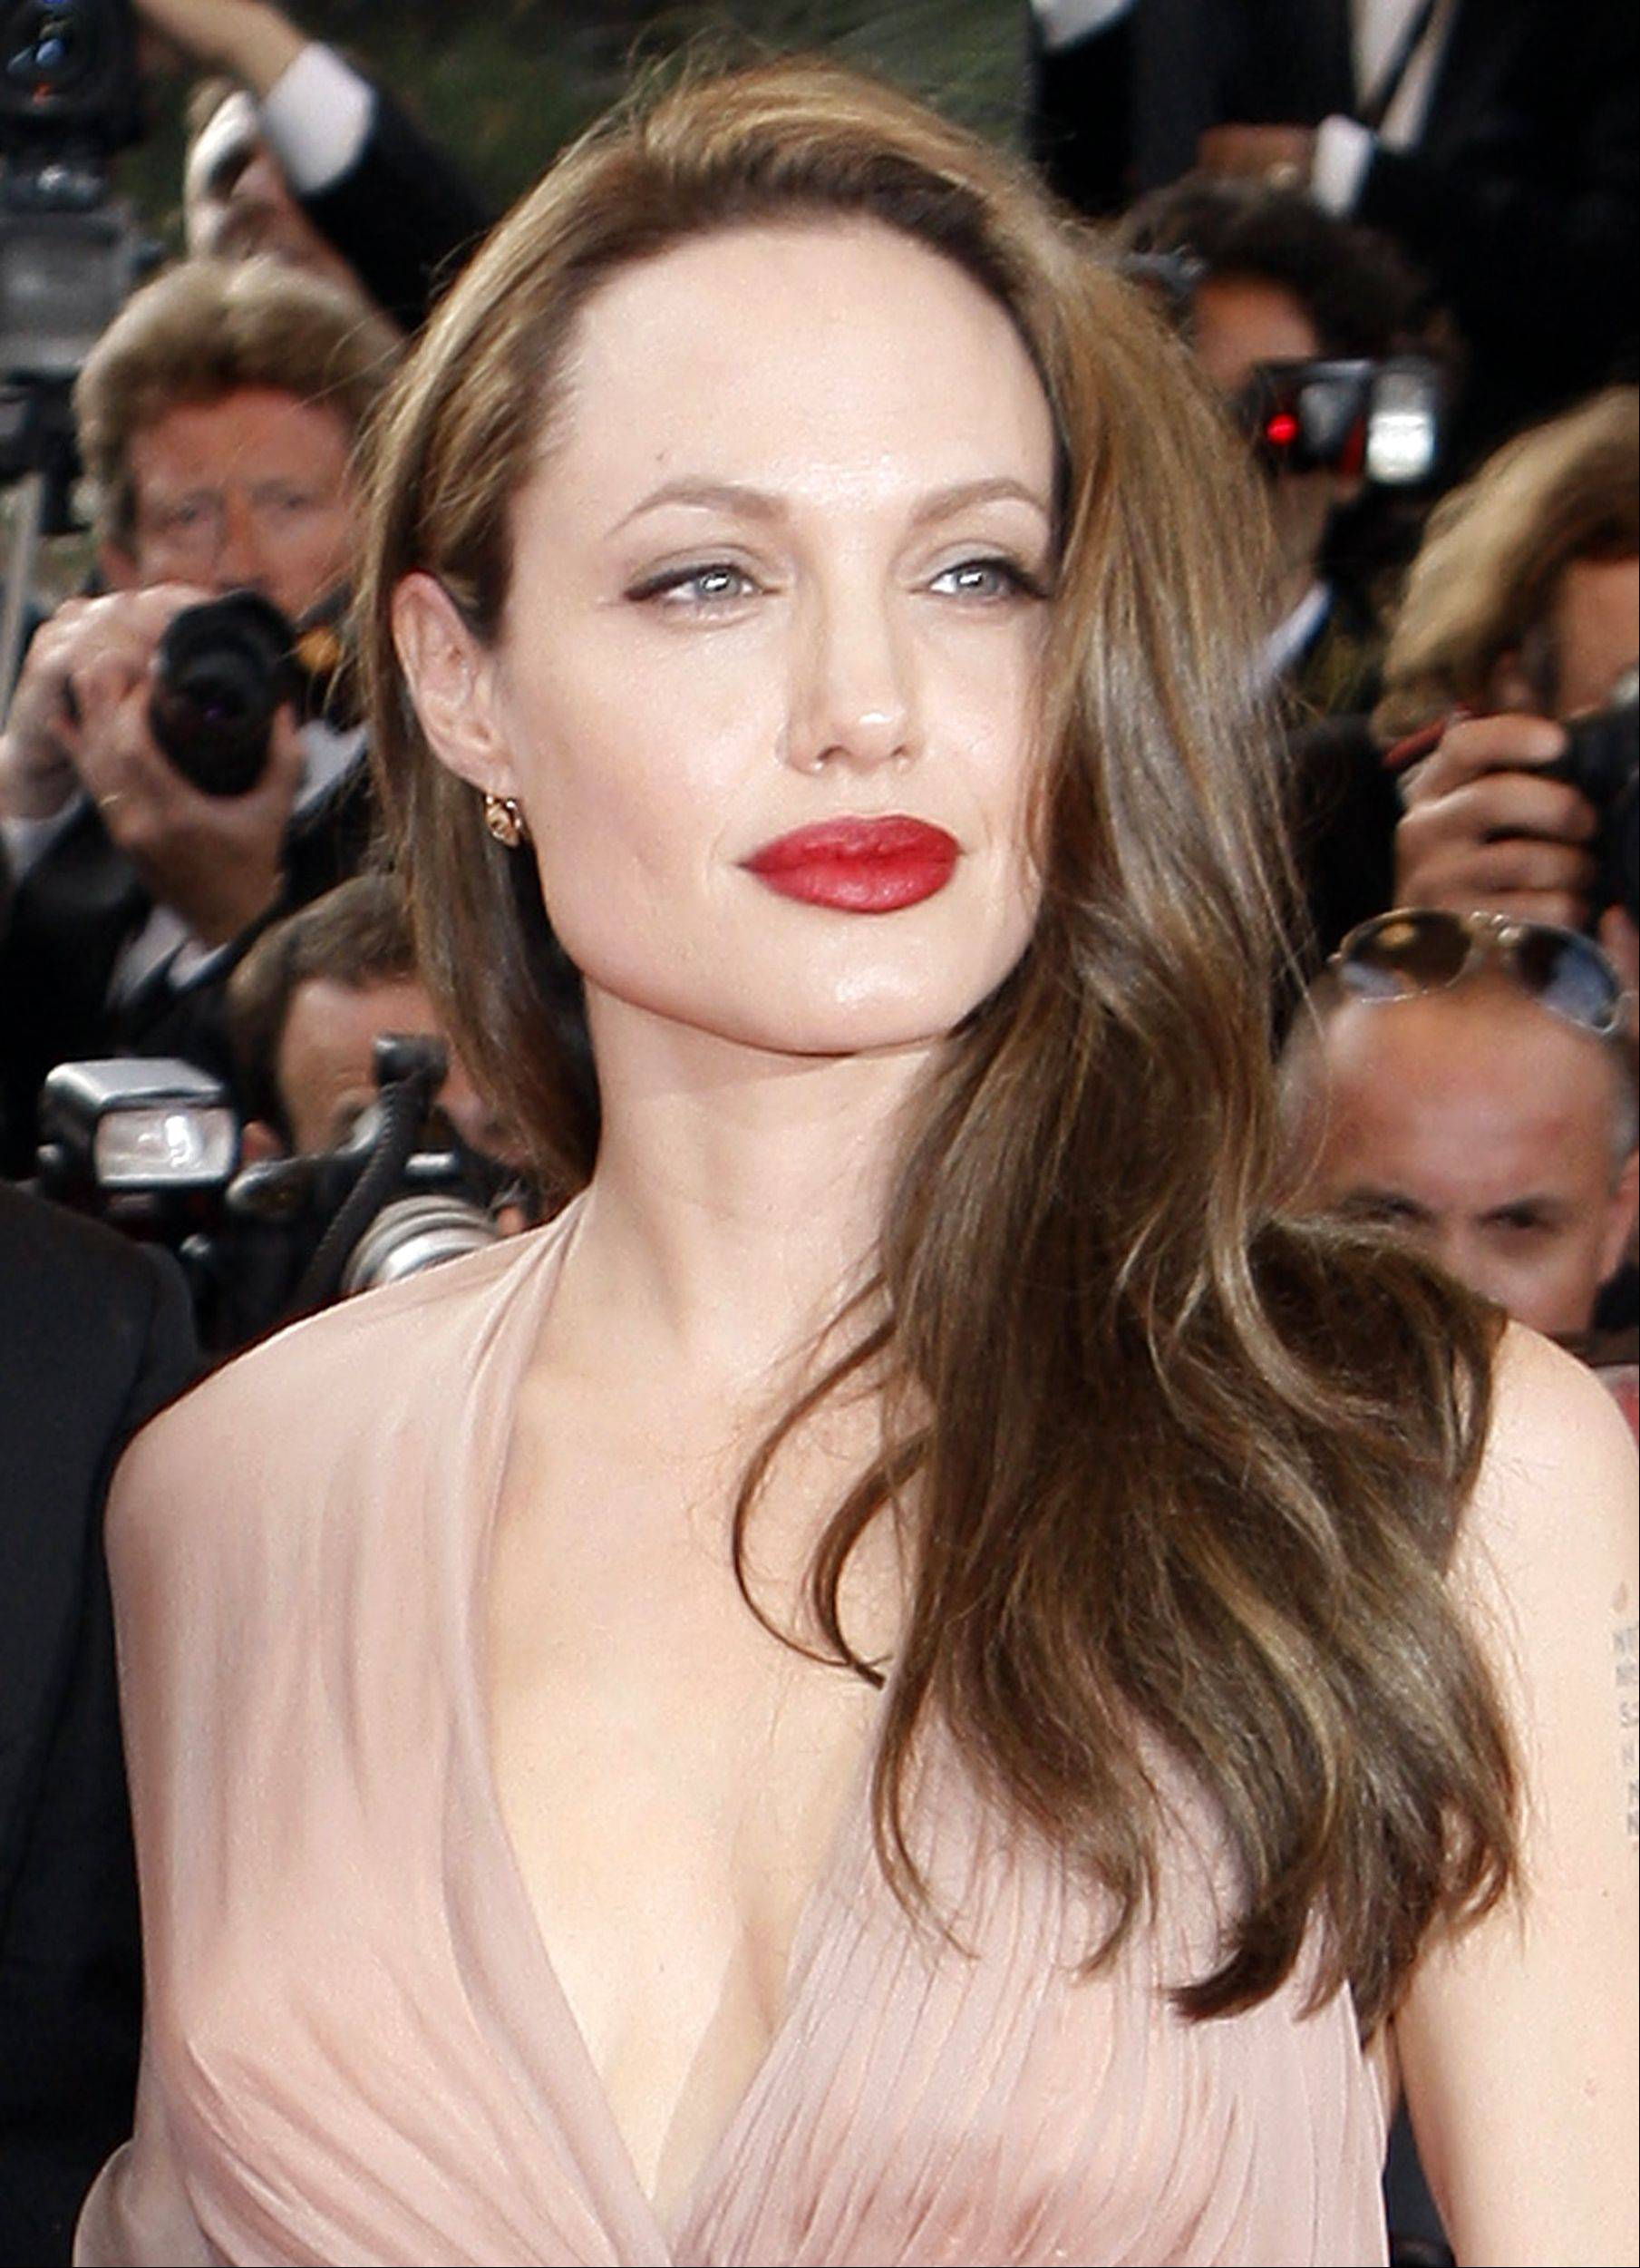 Angelina Jolie's aunt Debbie Martin died Sunday at age 61 of breast cancer. Jolie recently announced she had a double mastectomy to avoid breast cancer because her mother, Marchline Bertrand, Martin's sister died of the disease in 2007.